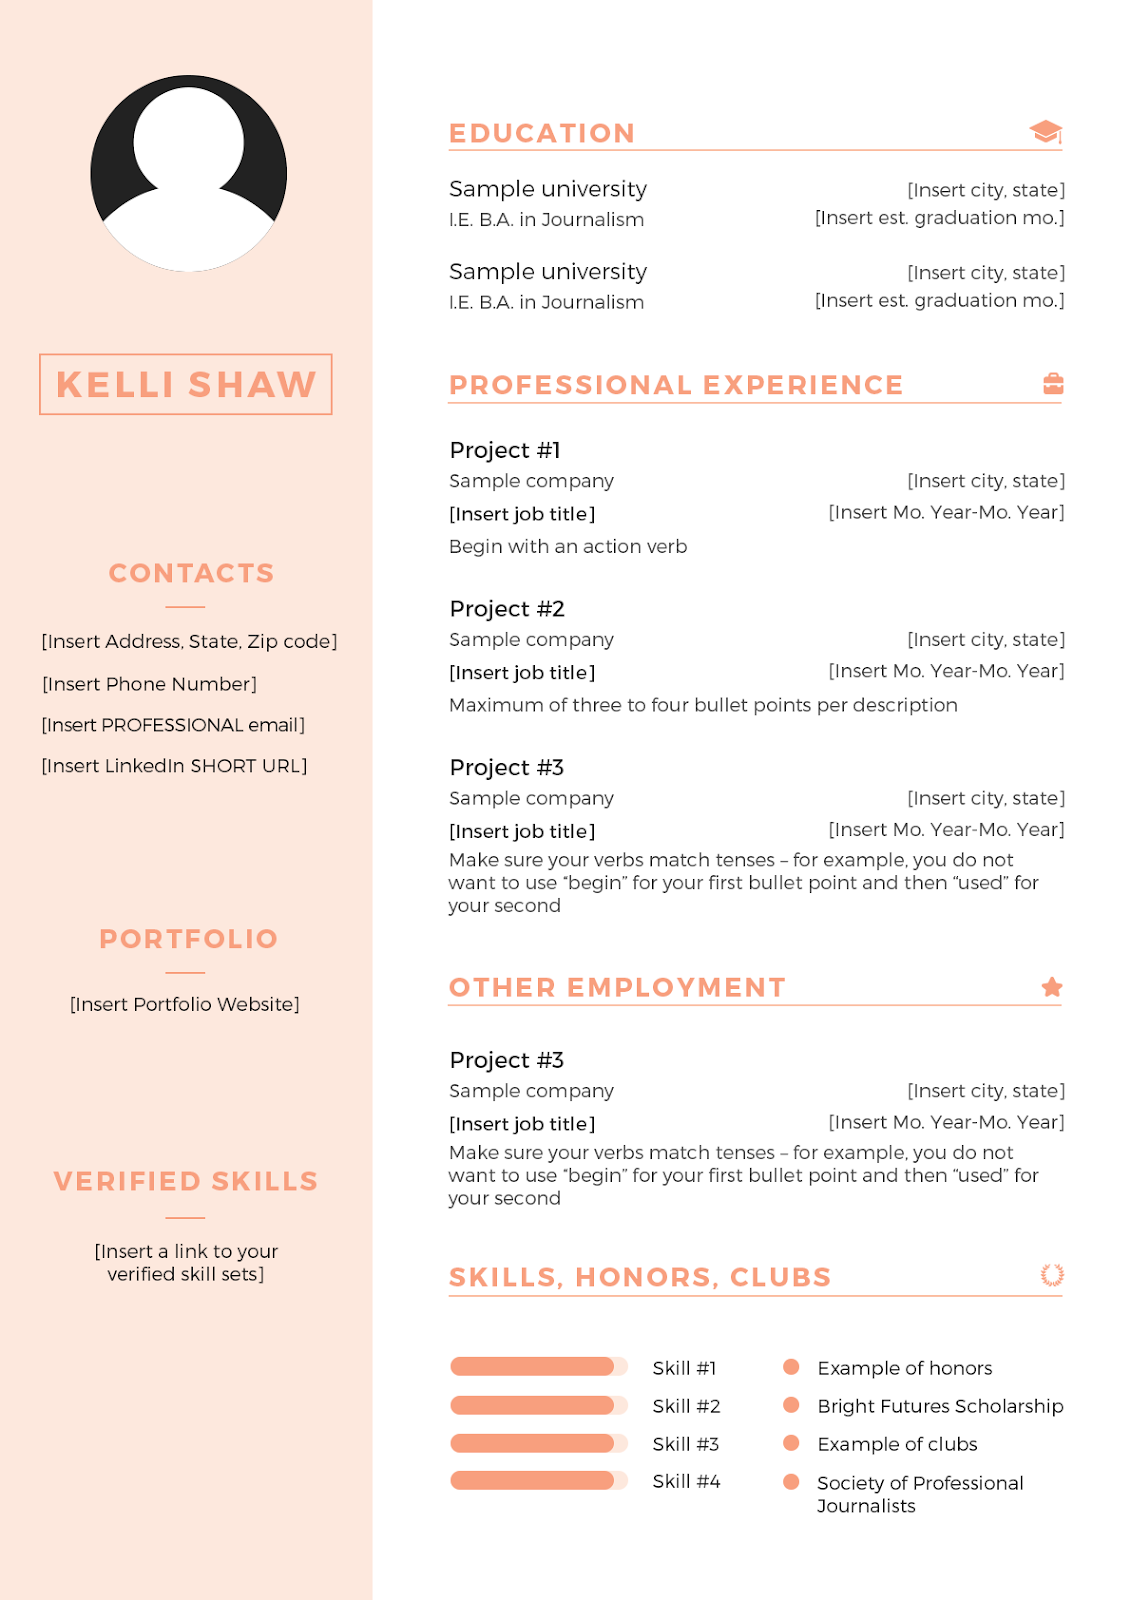 psd-resume-templates-6